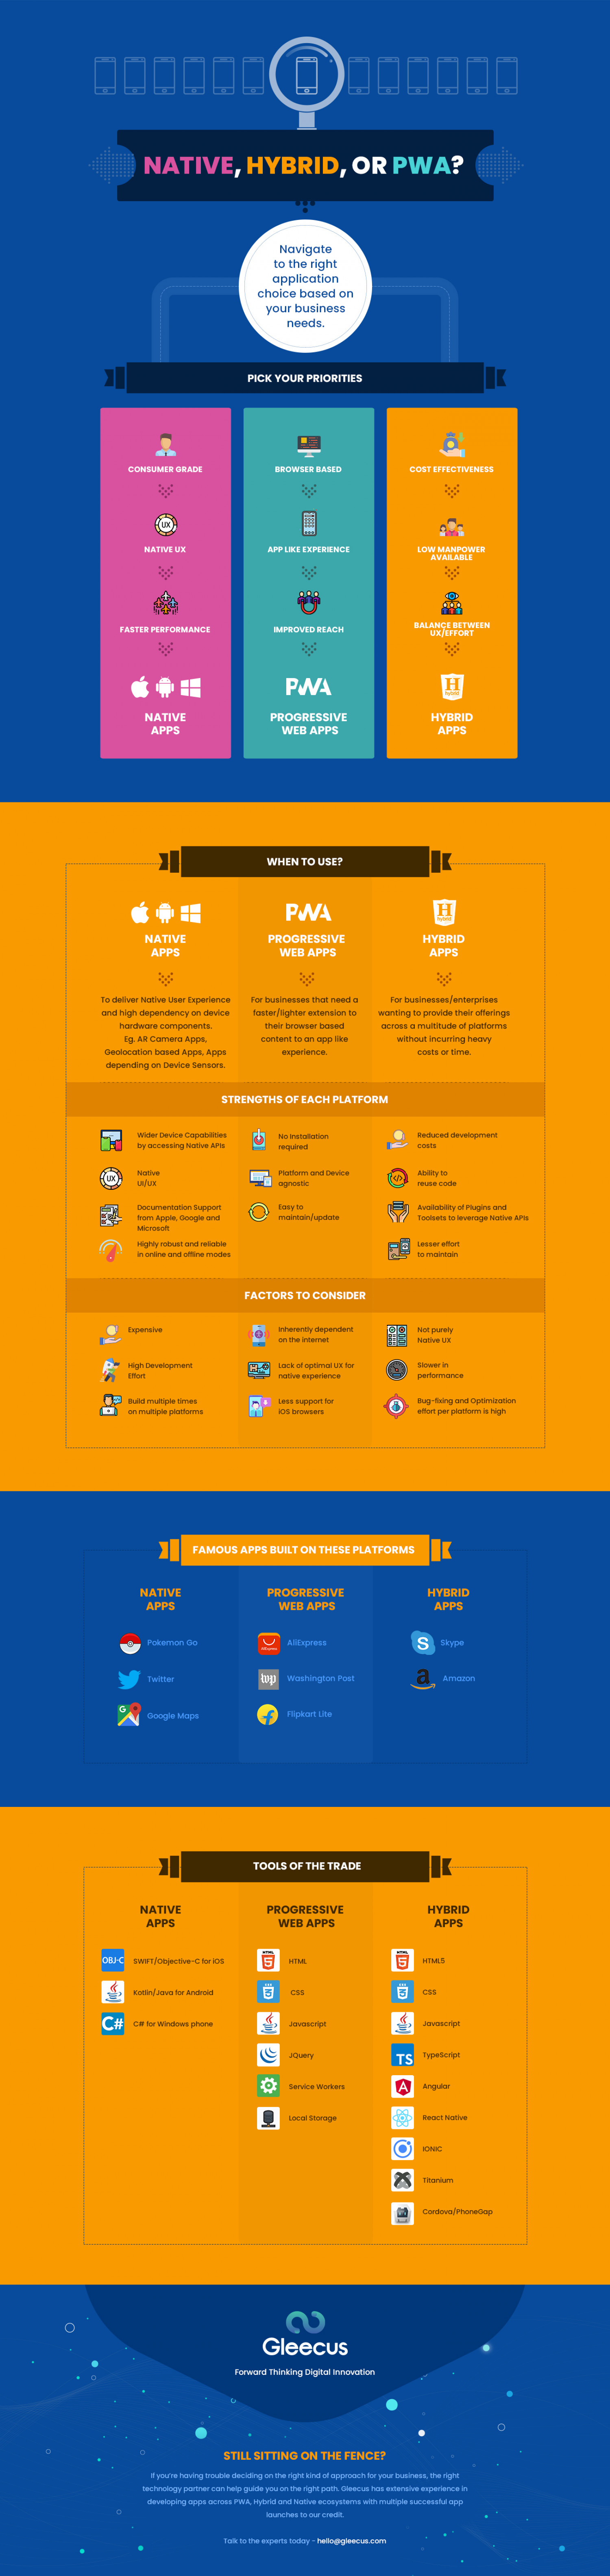 Native vs Hybrid vs PWAs: The right app development approach for your business. Infographic